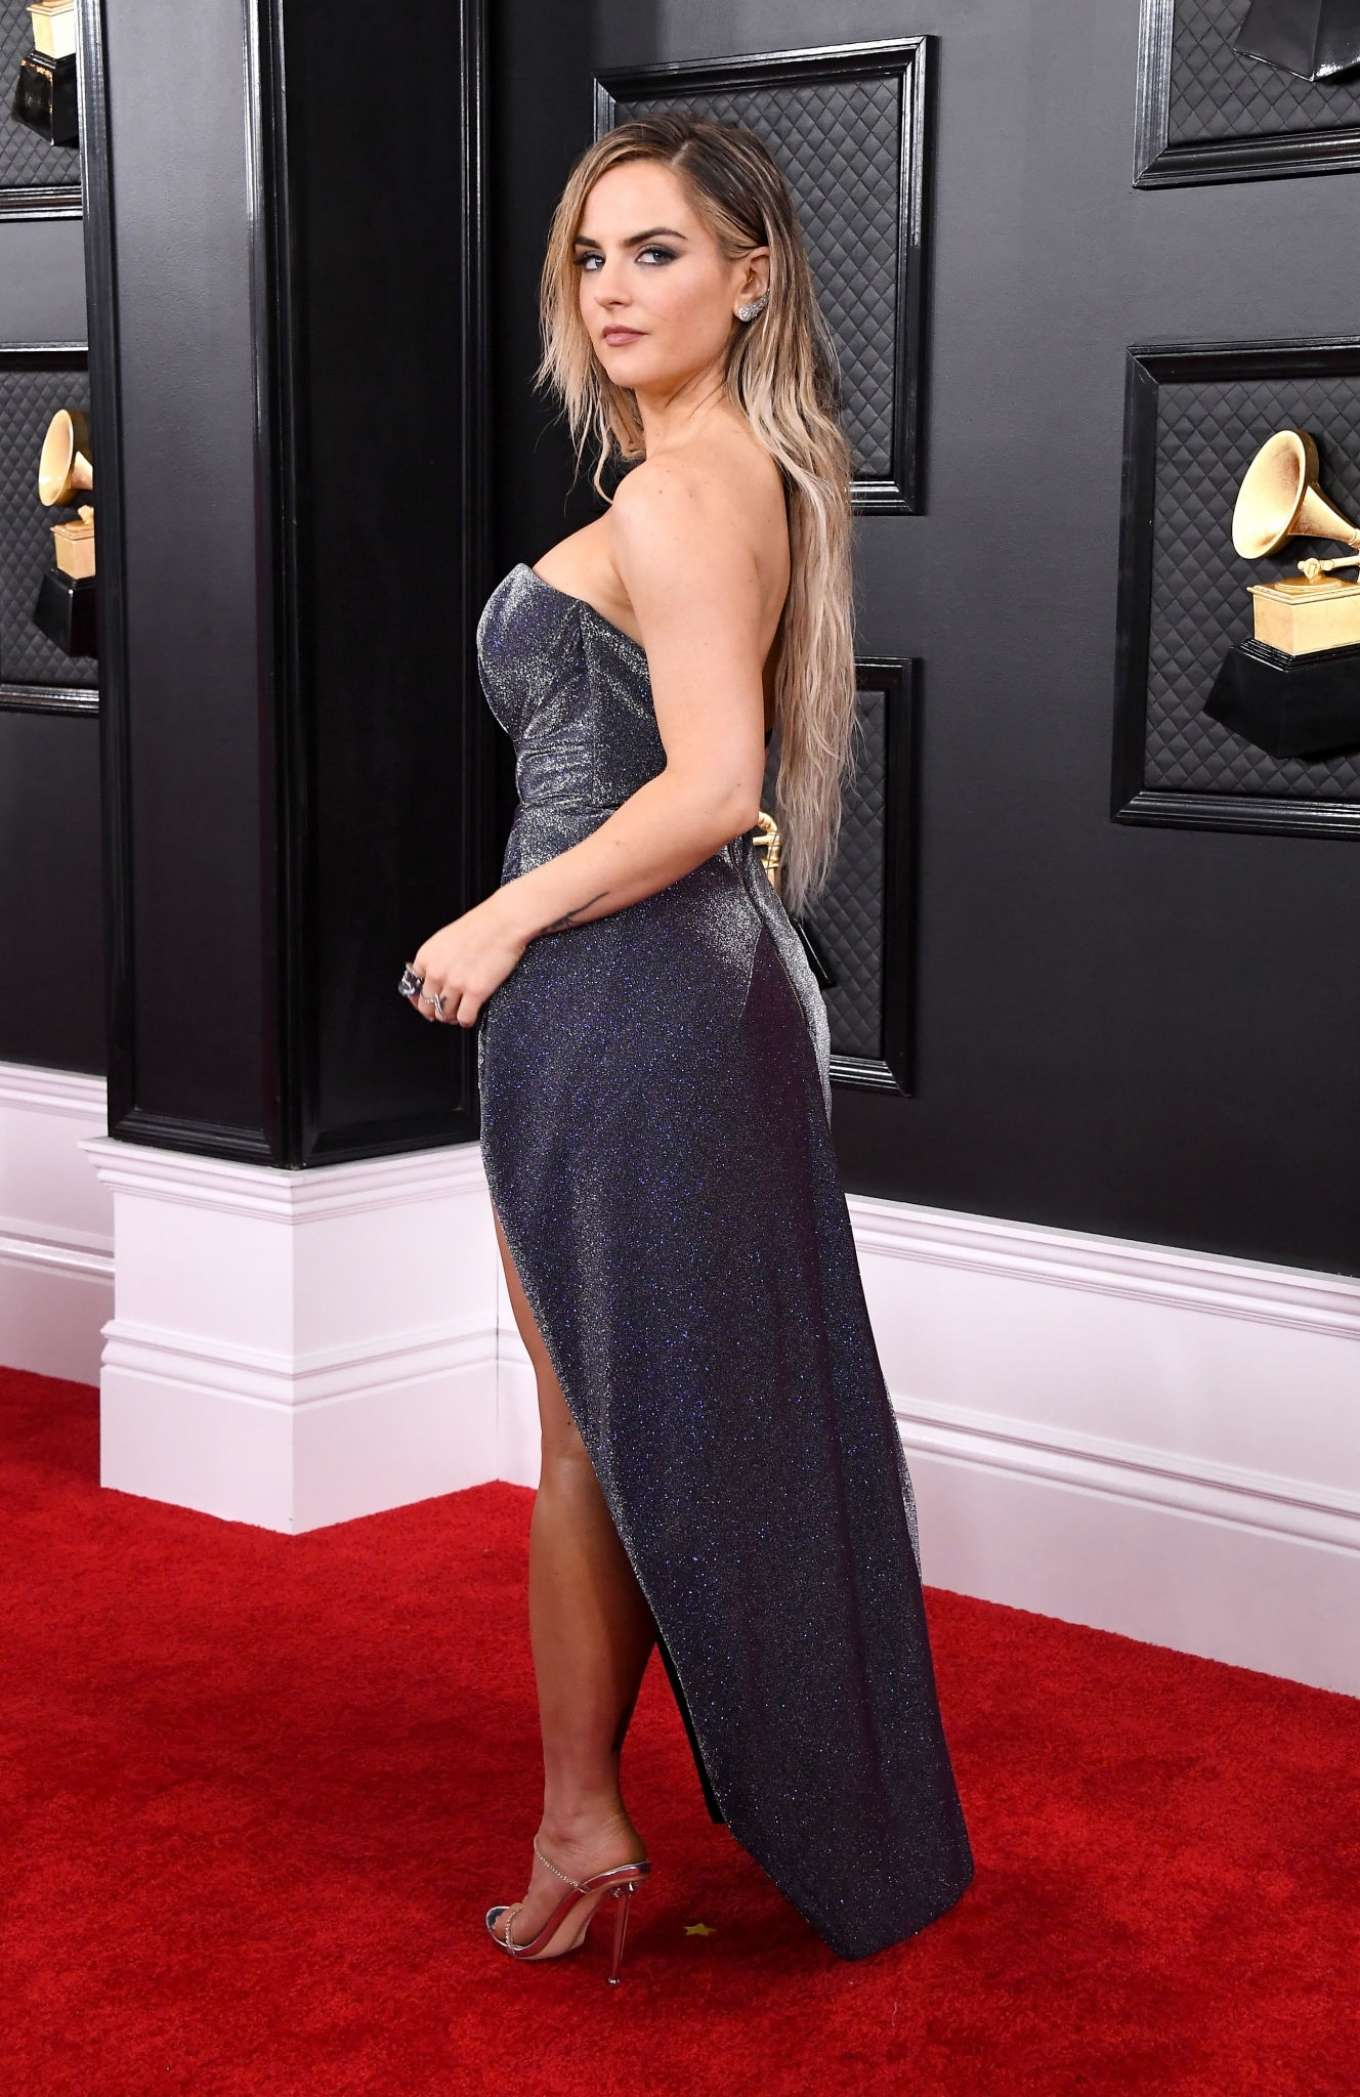 Joanna JoJo Levesque 2020 : Joanna JoJo Levesque – 2020 Grammy Awards-11